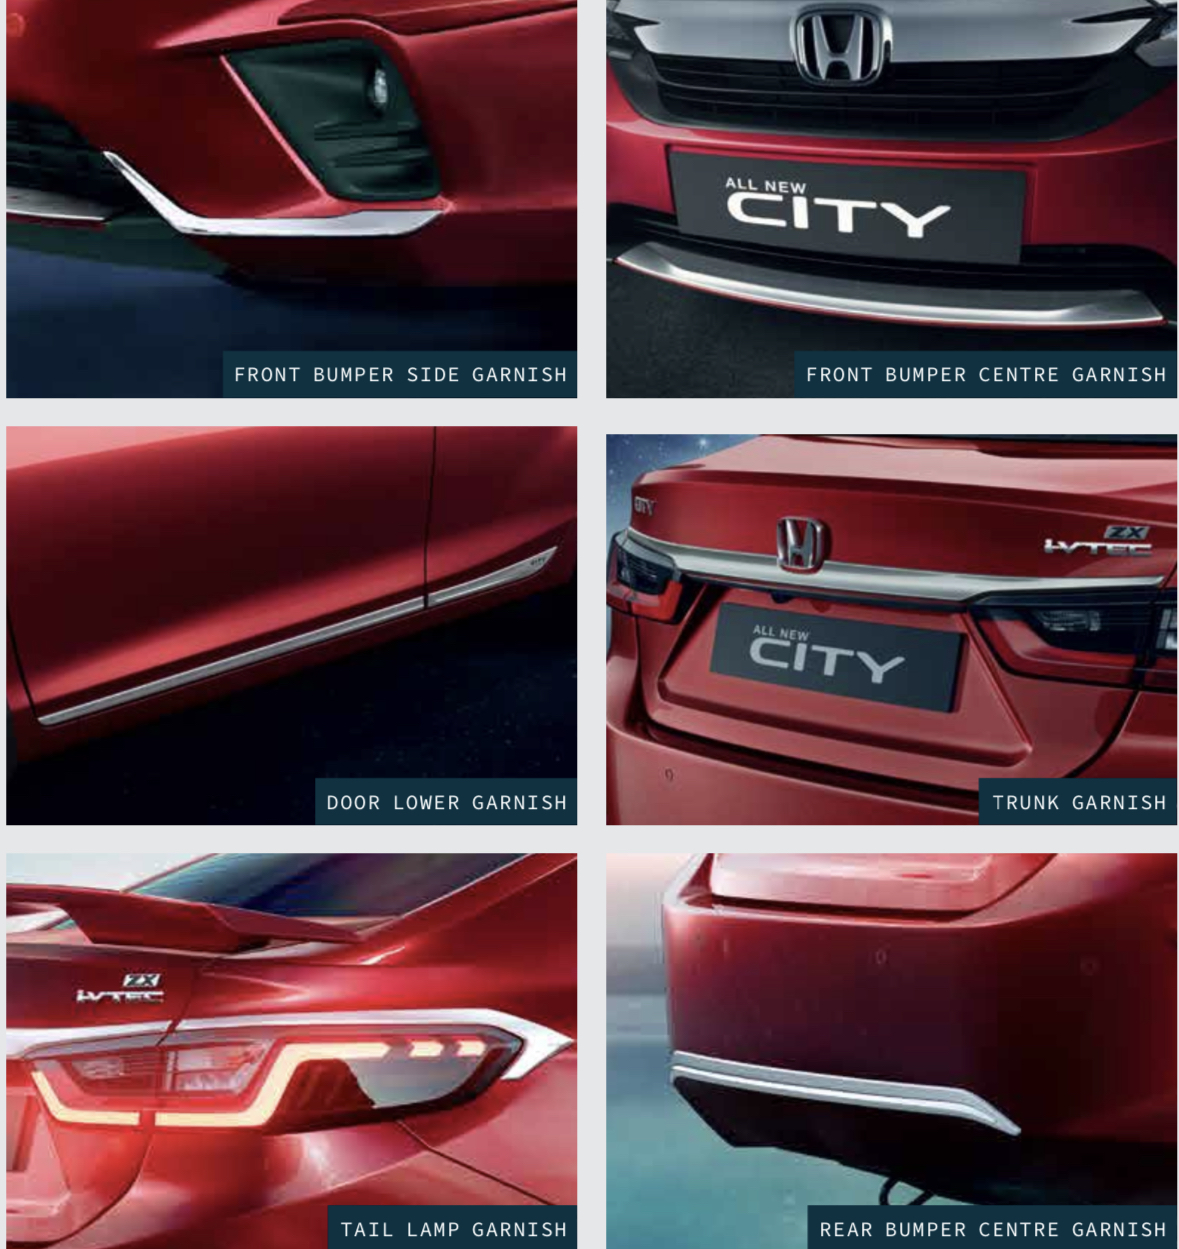 2020 Honda City Chrome Garnish